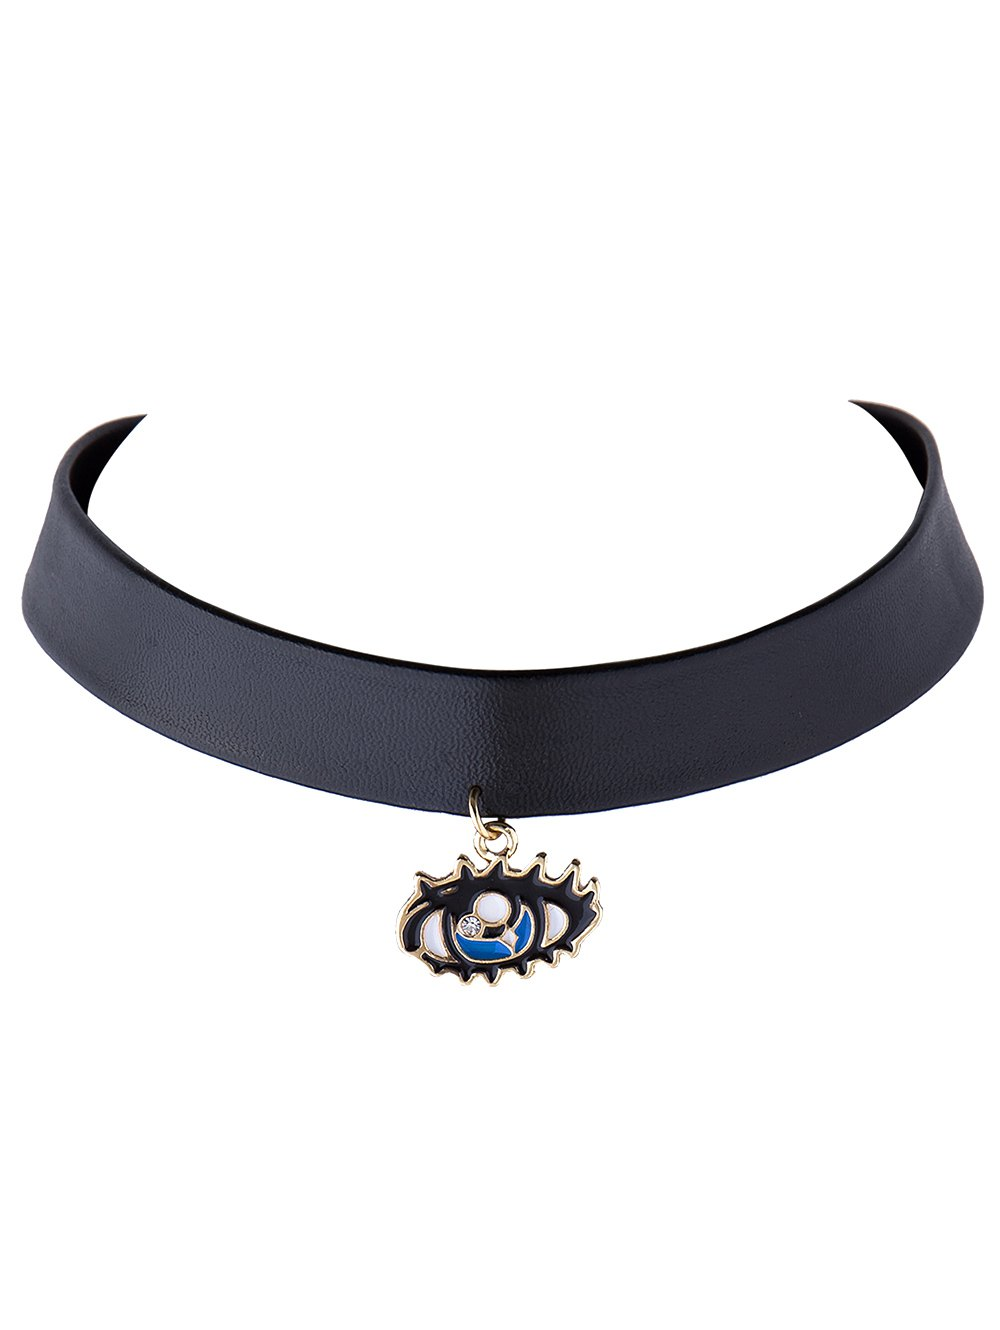 Rhinestone Eye Faux Leather Choker Necklace